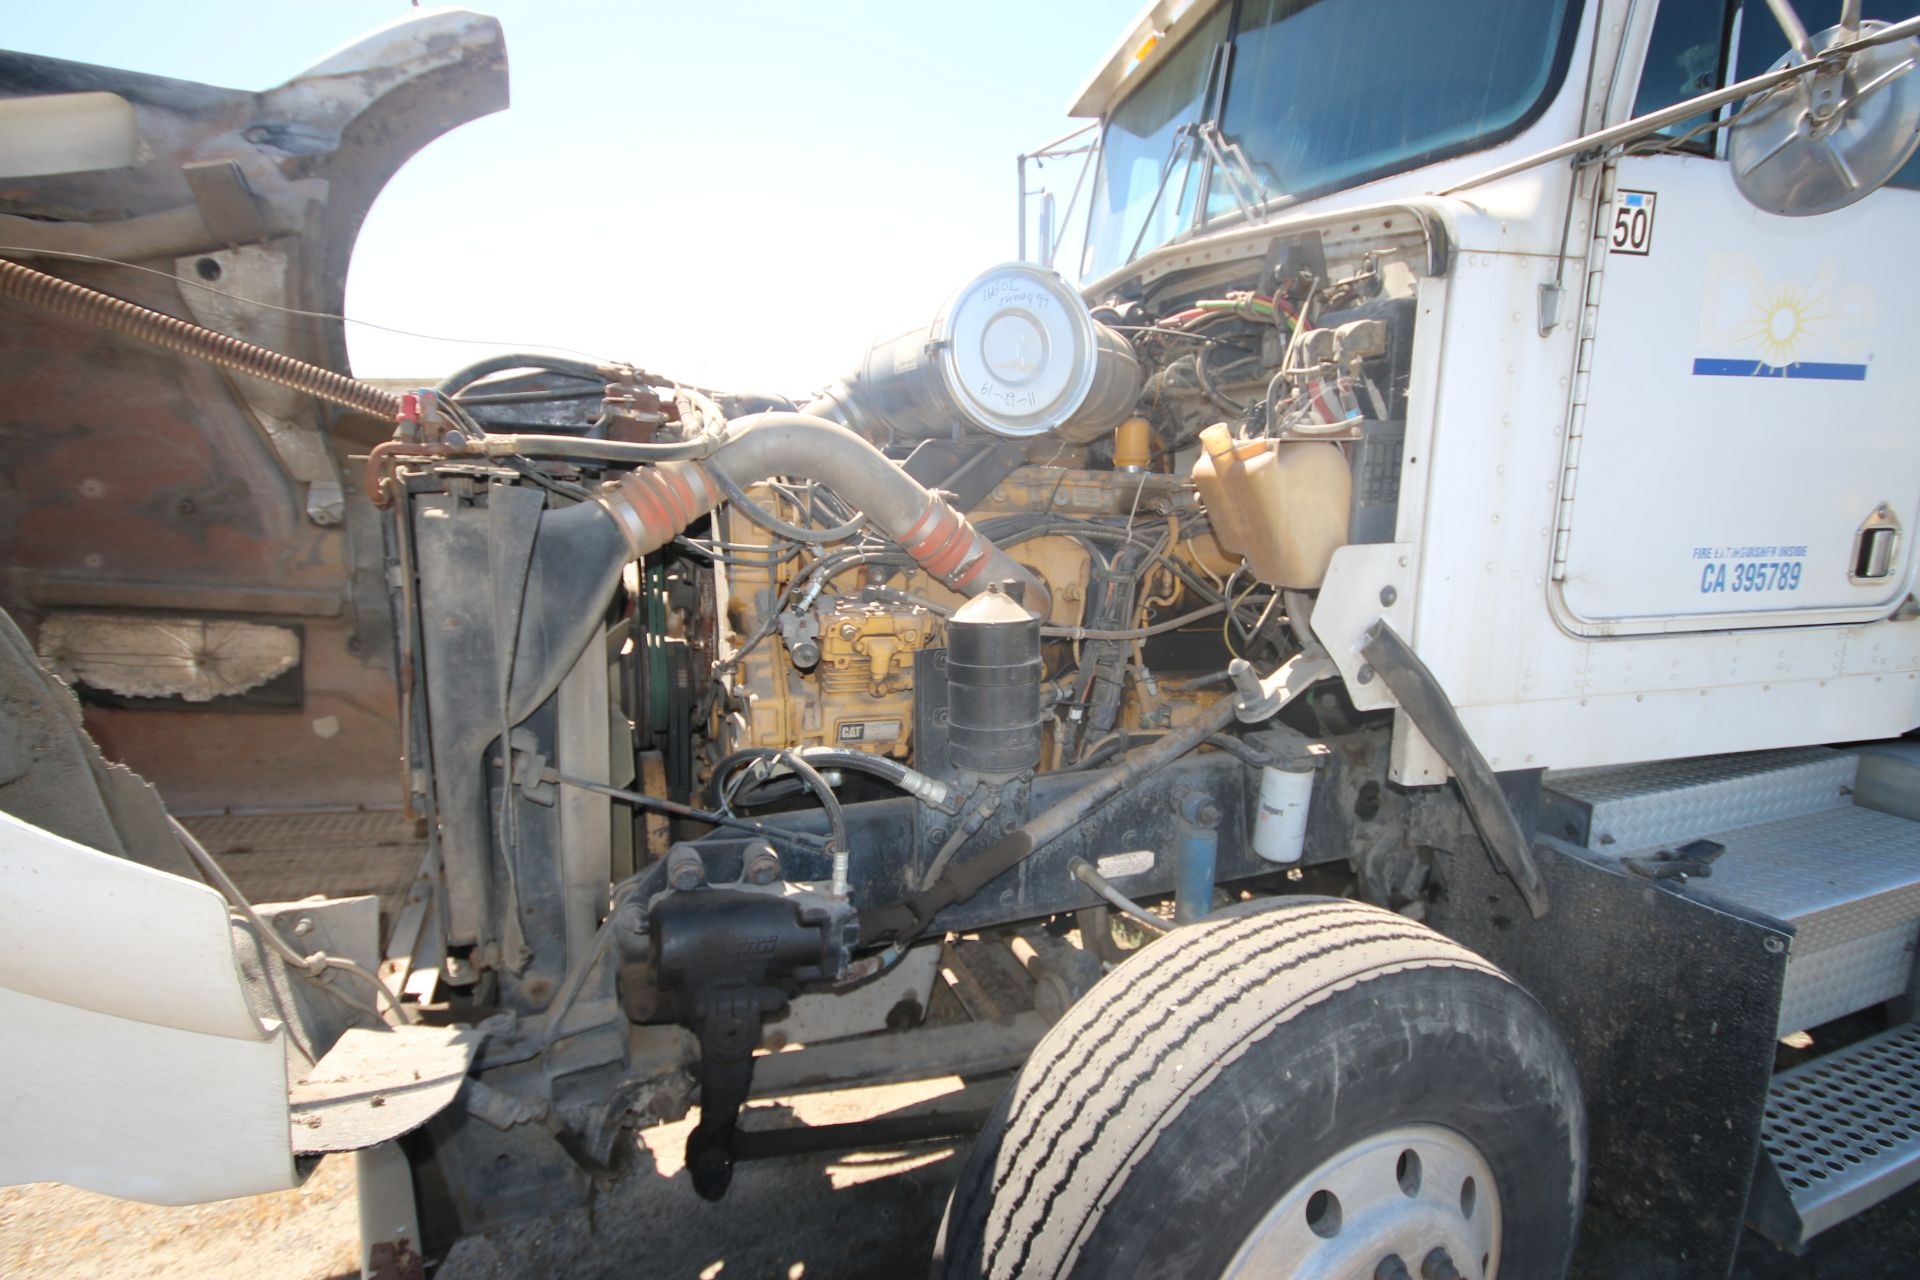 1996 Kenworth 3-Axle Roll-Off Straight Truck, VIN #: 1XKDDB9XOTS687107, with 24,722 Miles, License - Image 8 of 30